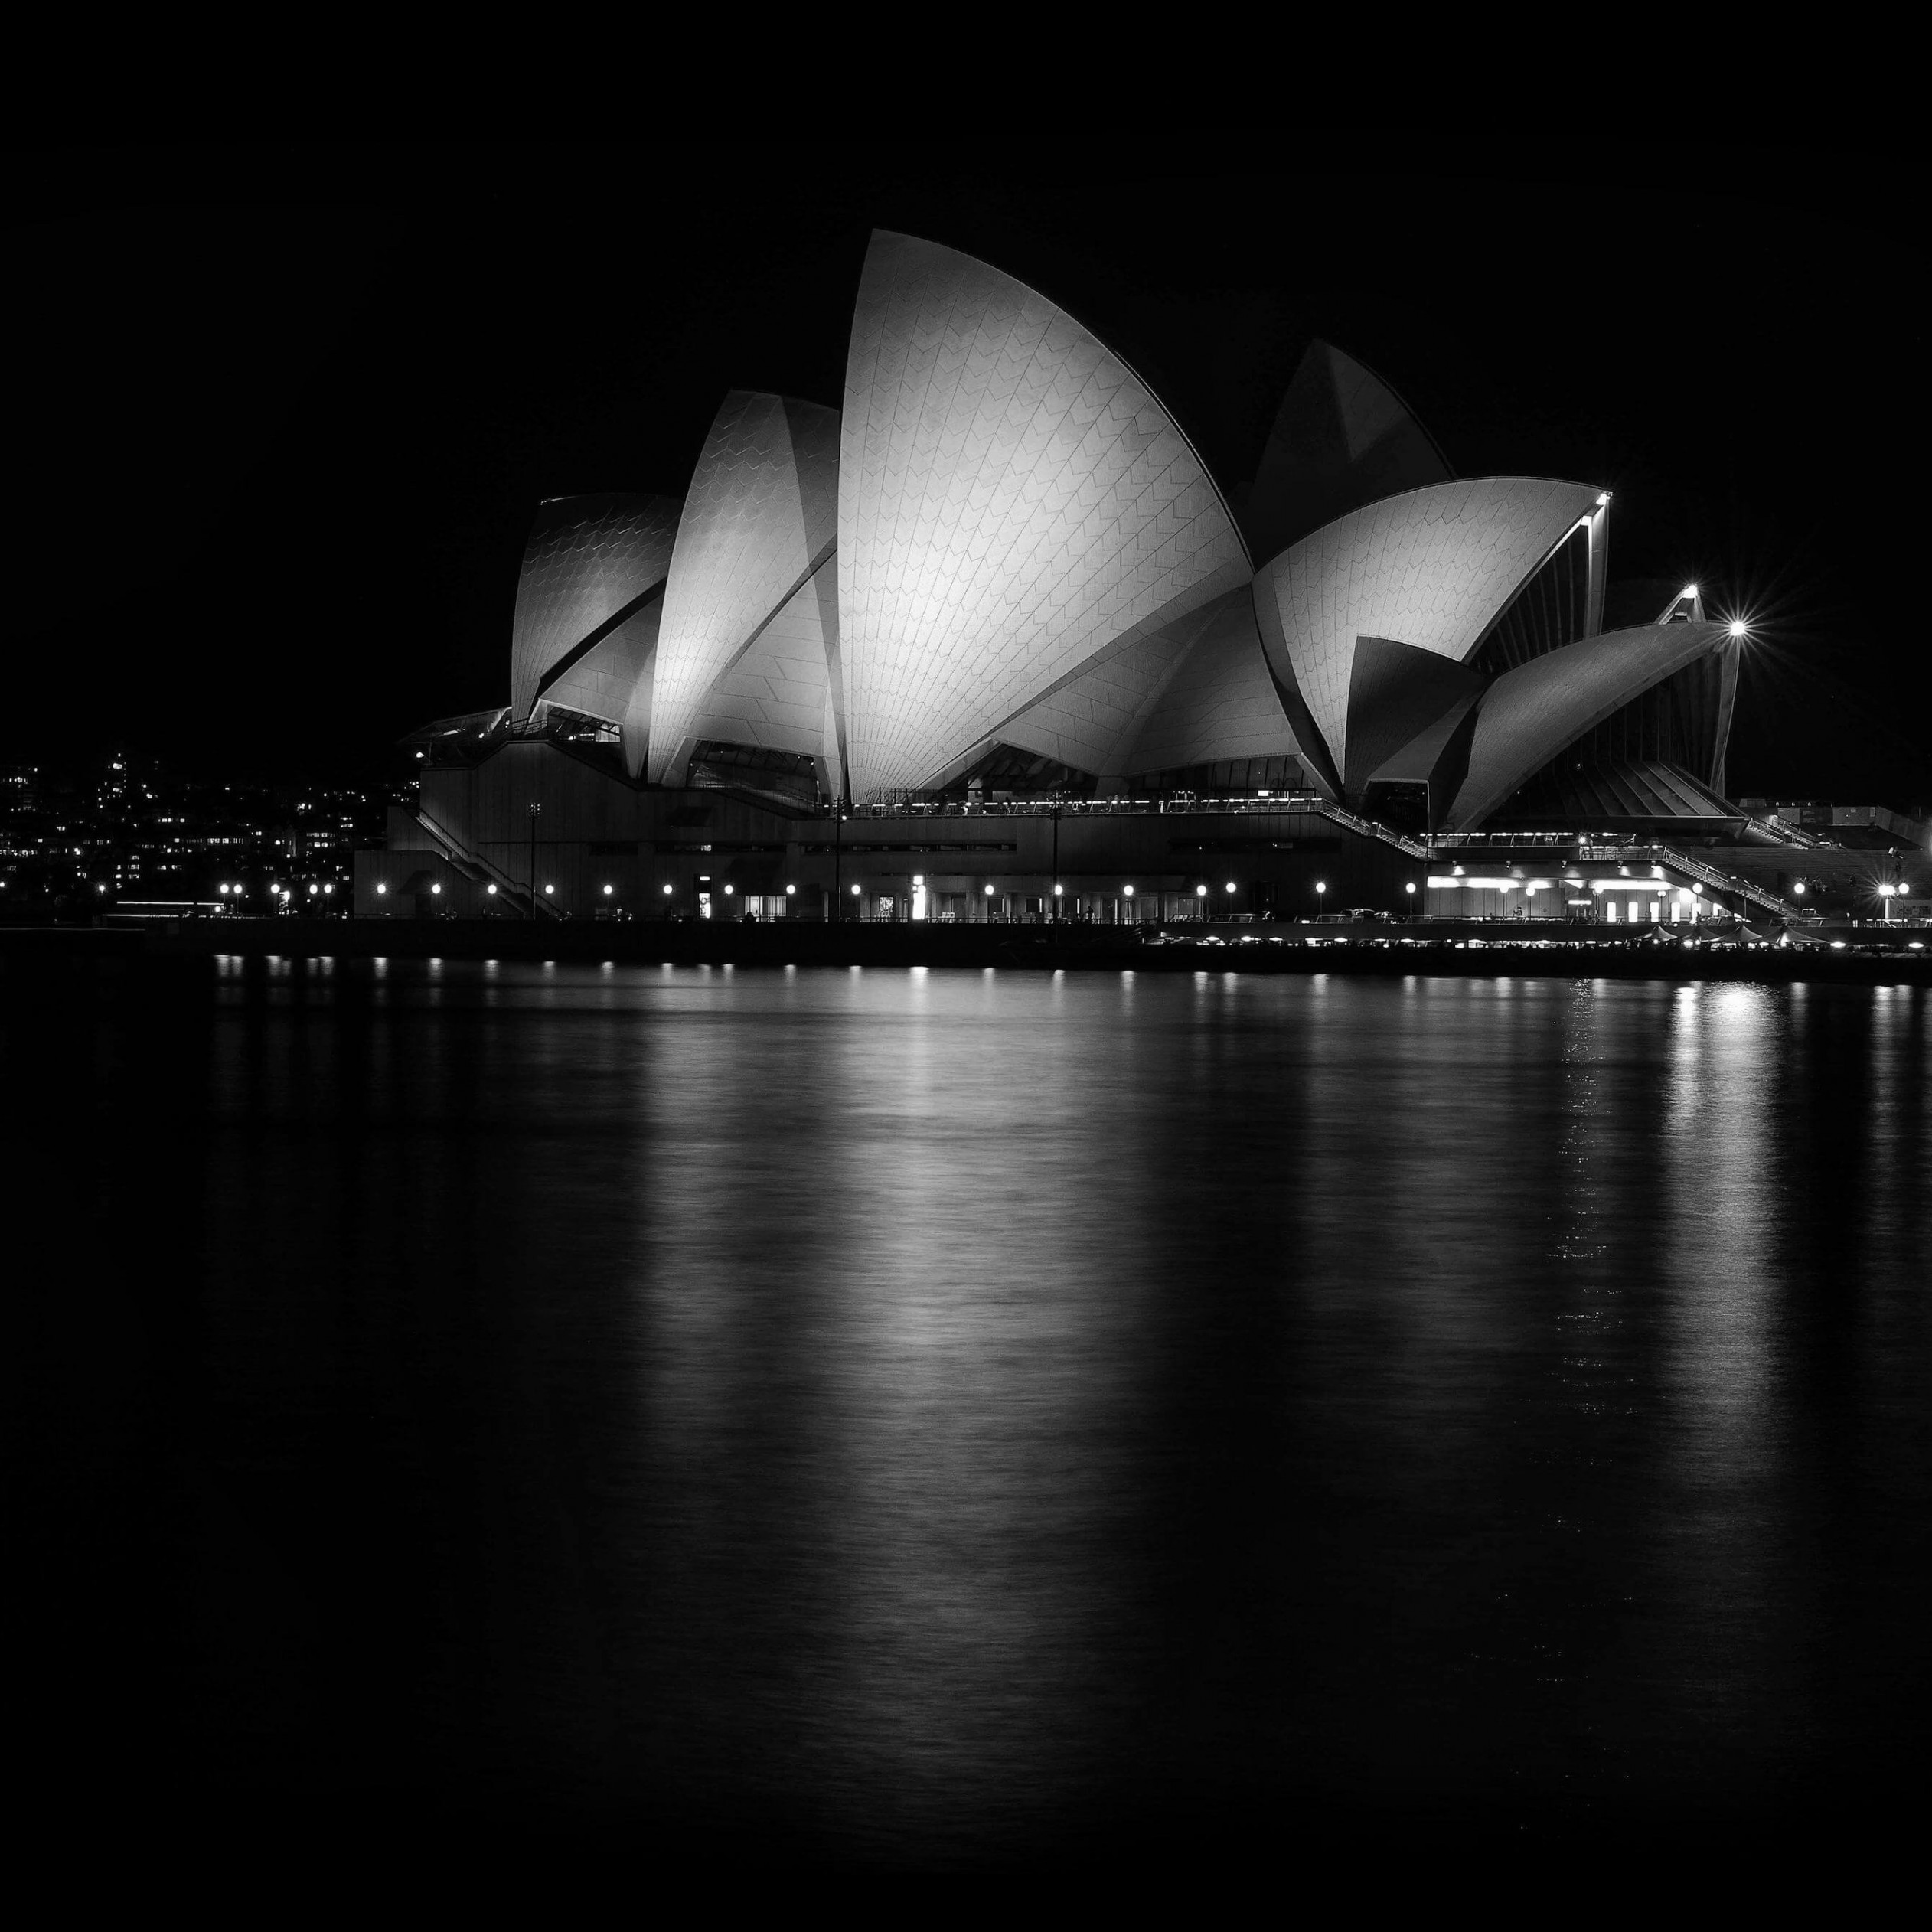 Sydney Opera House at Night in Black & White Wallpaper for Apple iPad 3